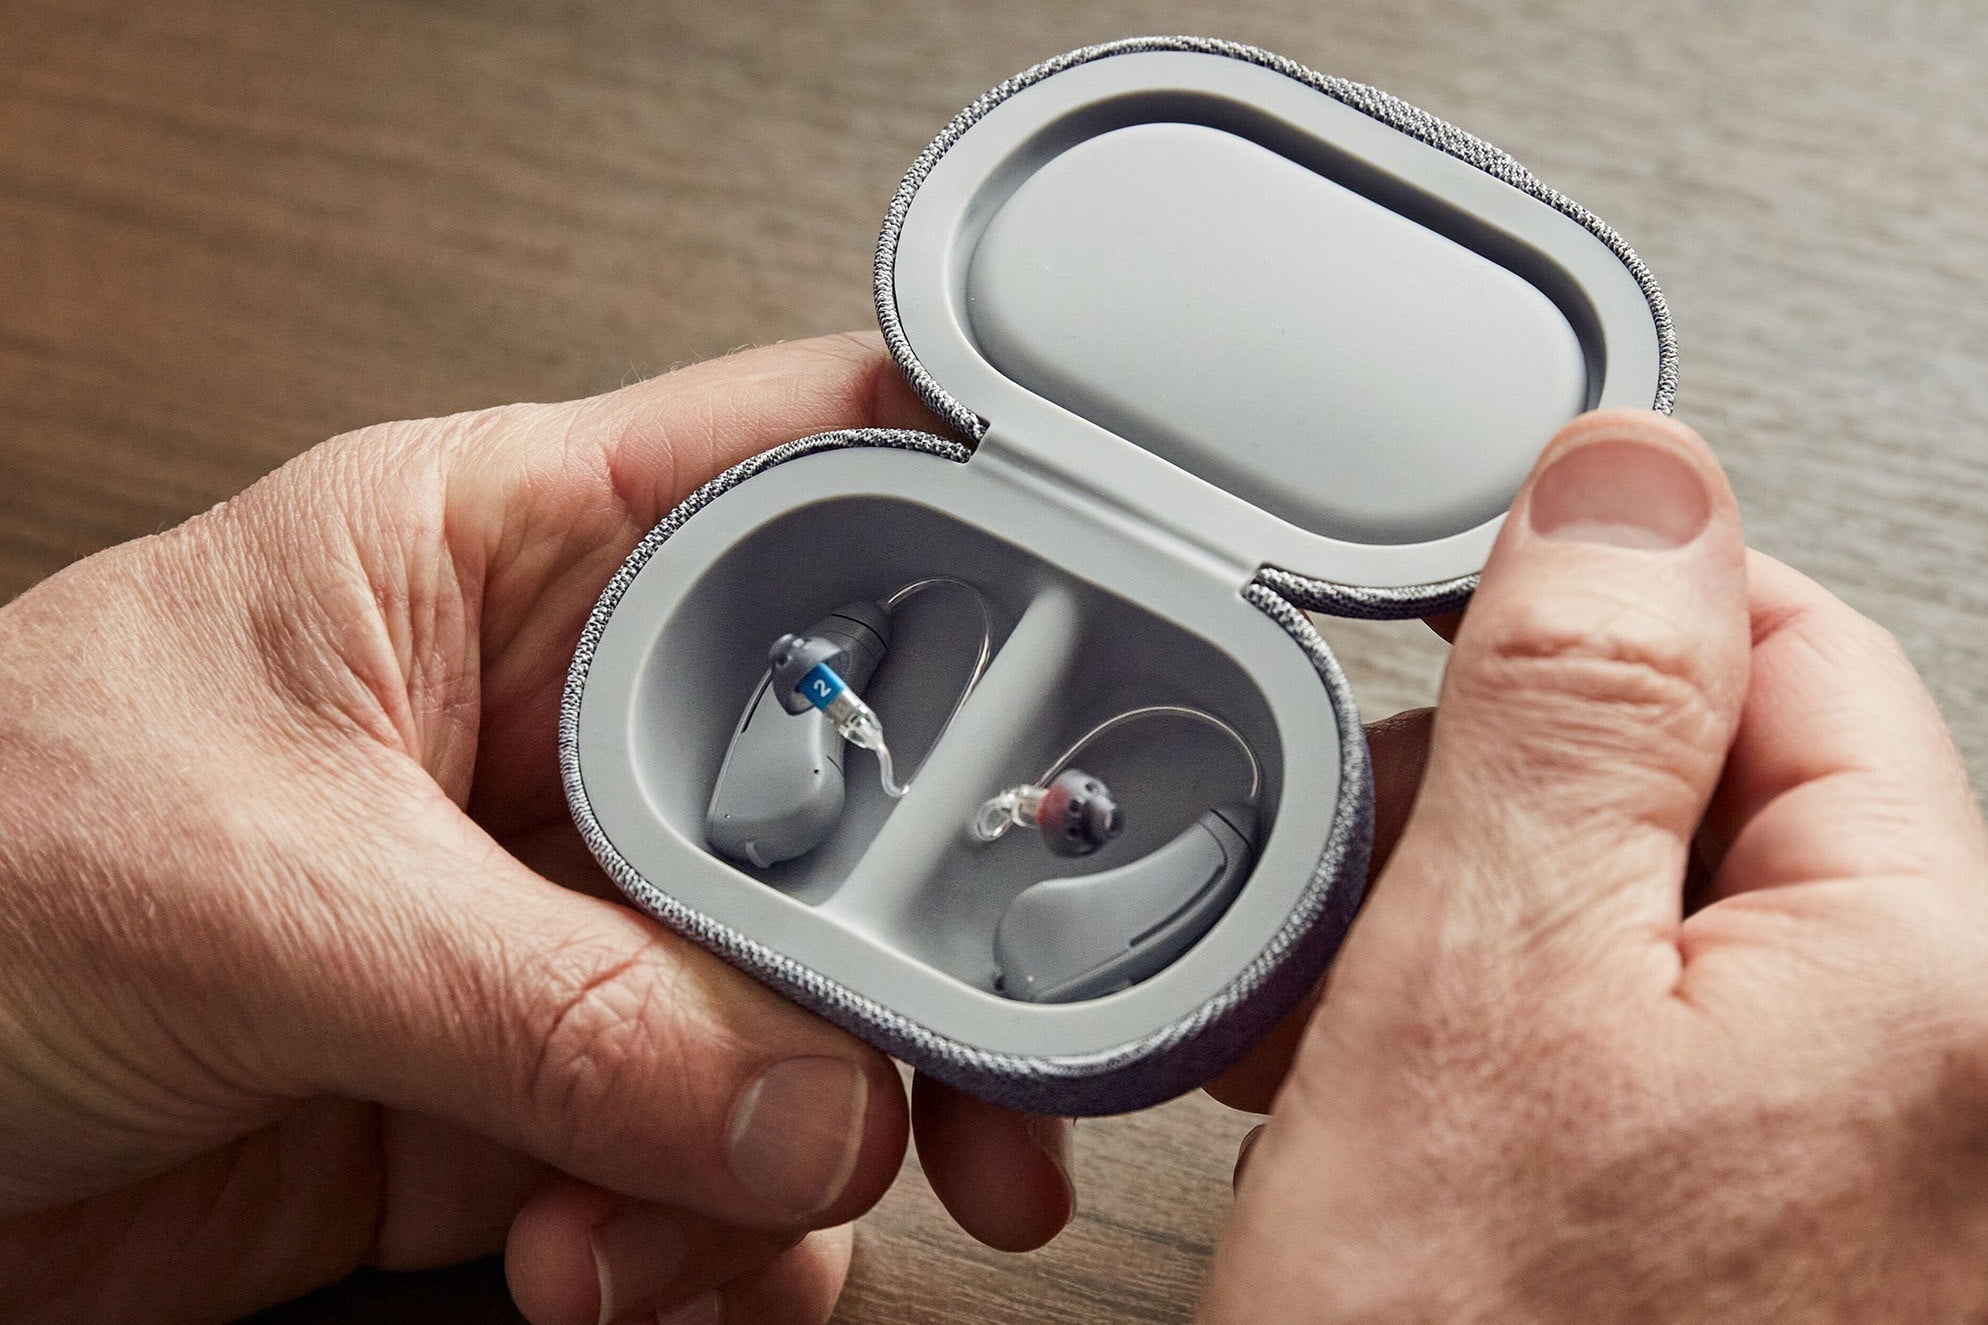 Bose hearing aids cost $ 850, don't require audiology